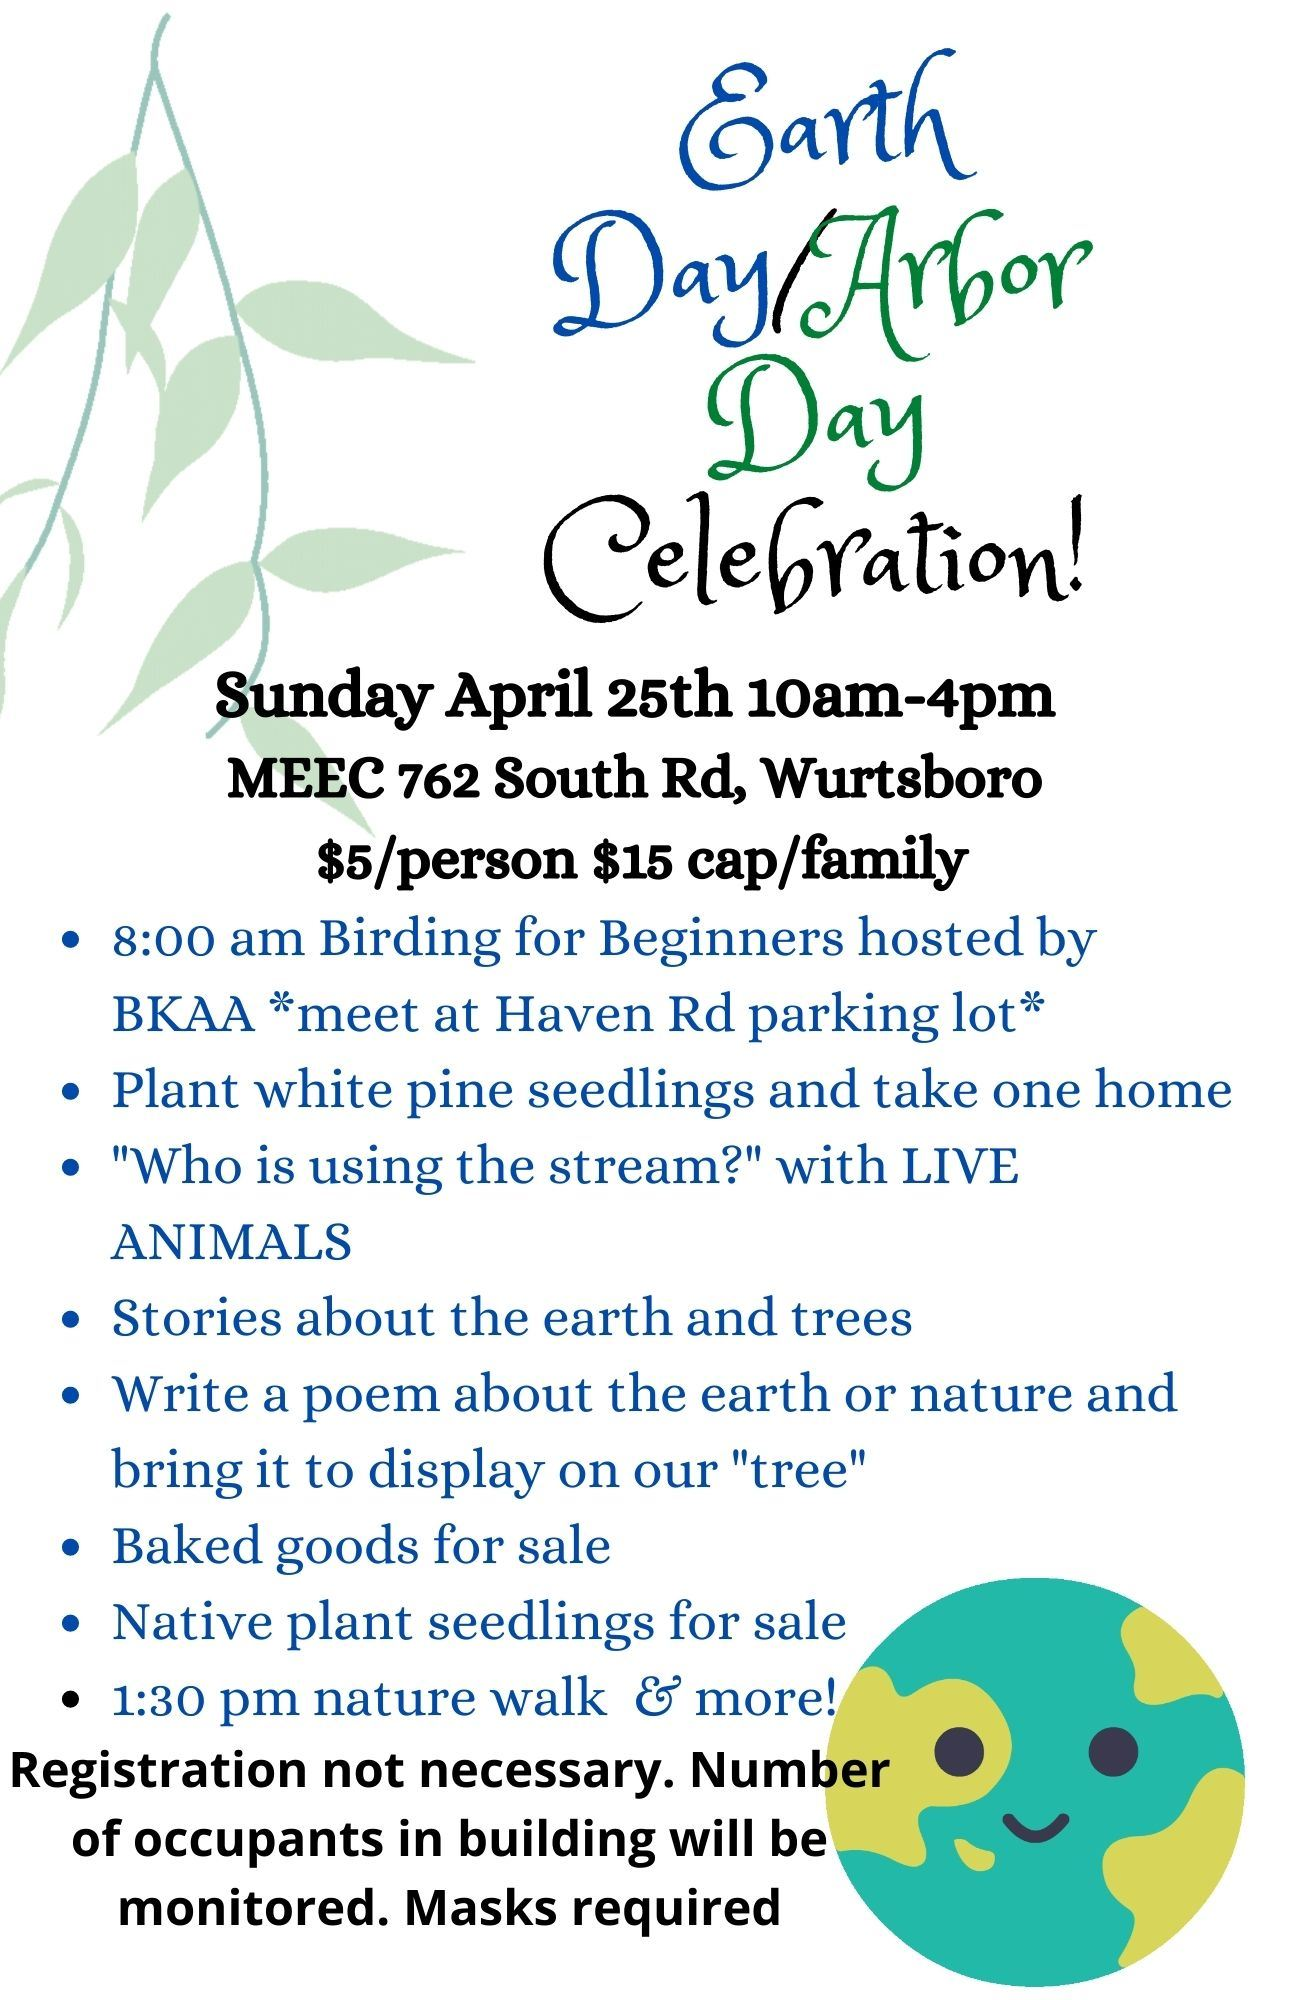 Earth Day_Arbor Day Celebration!